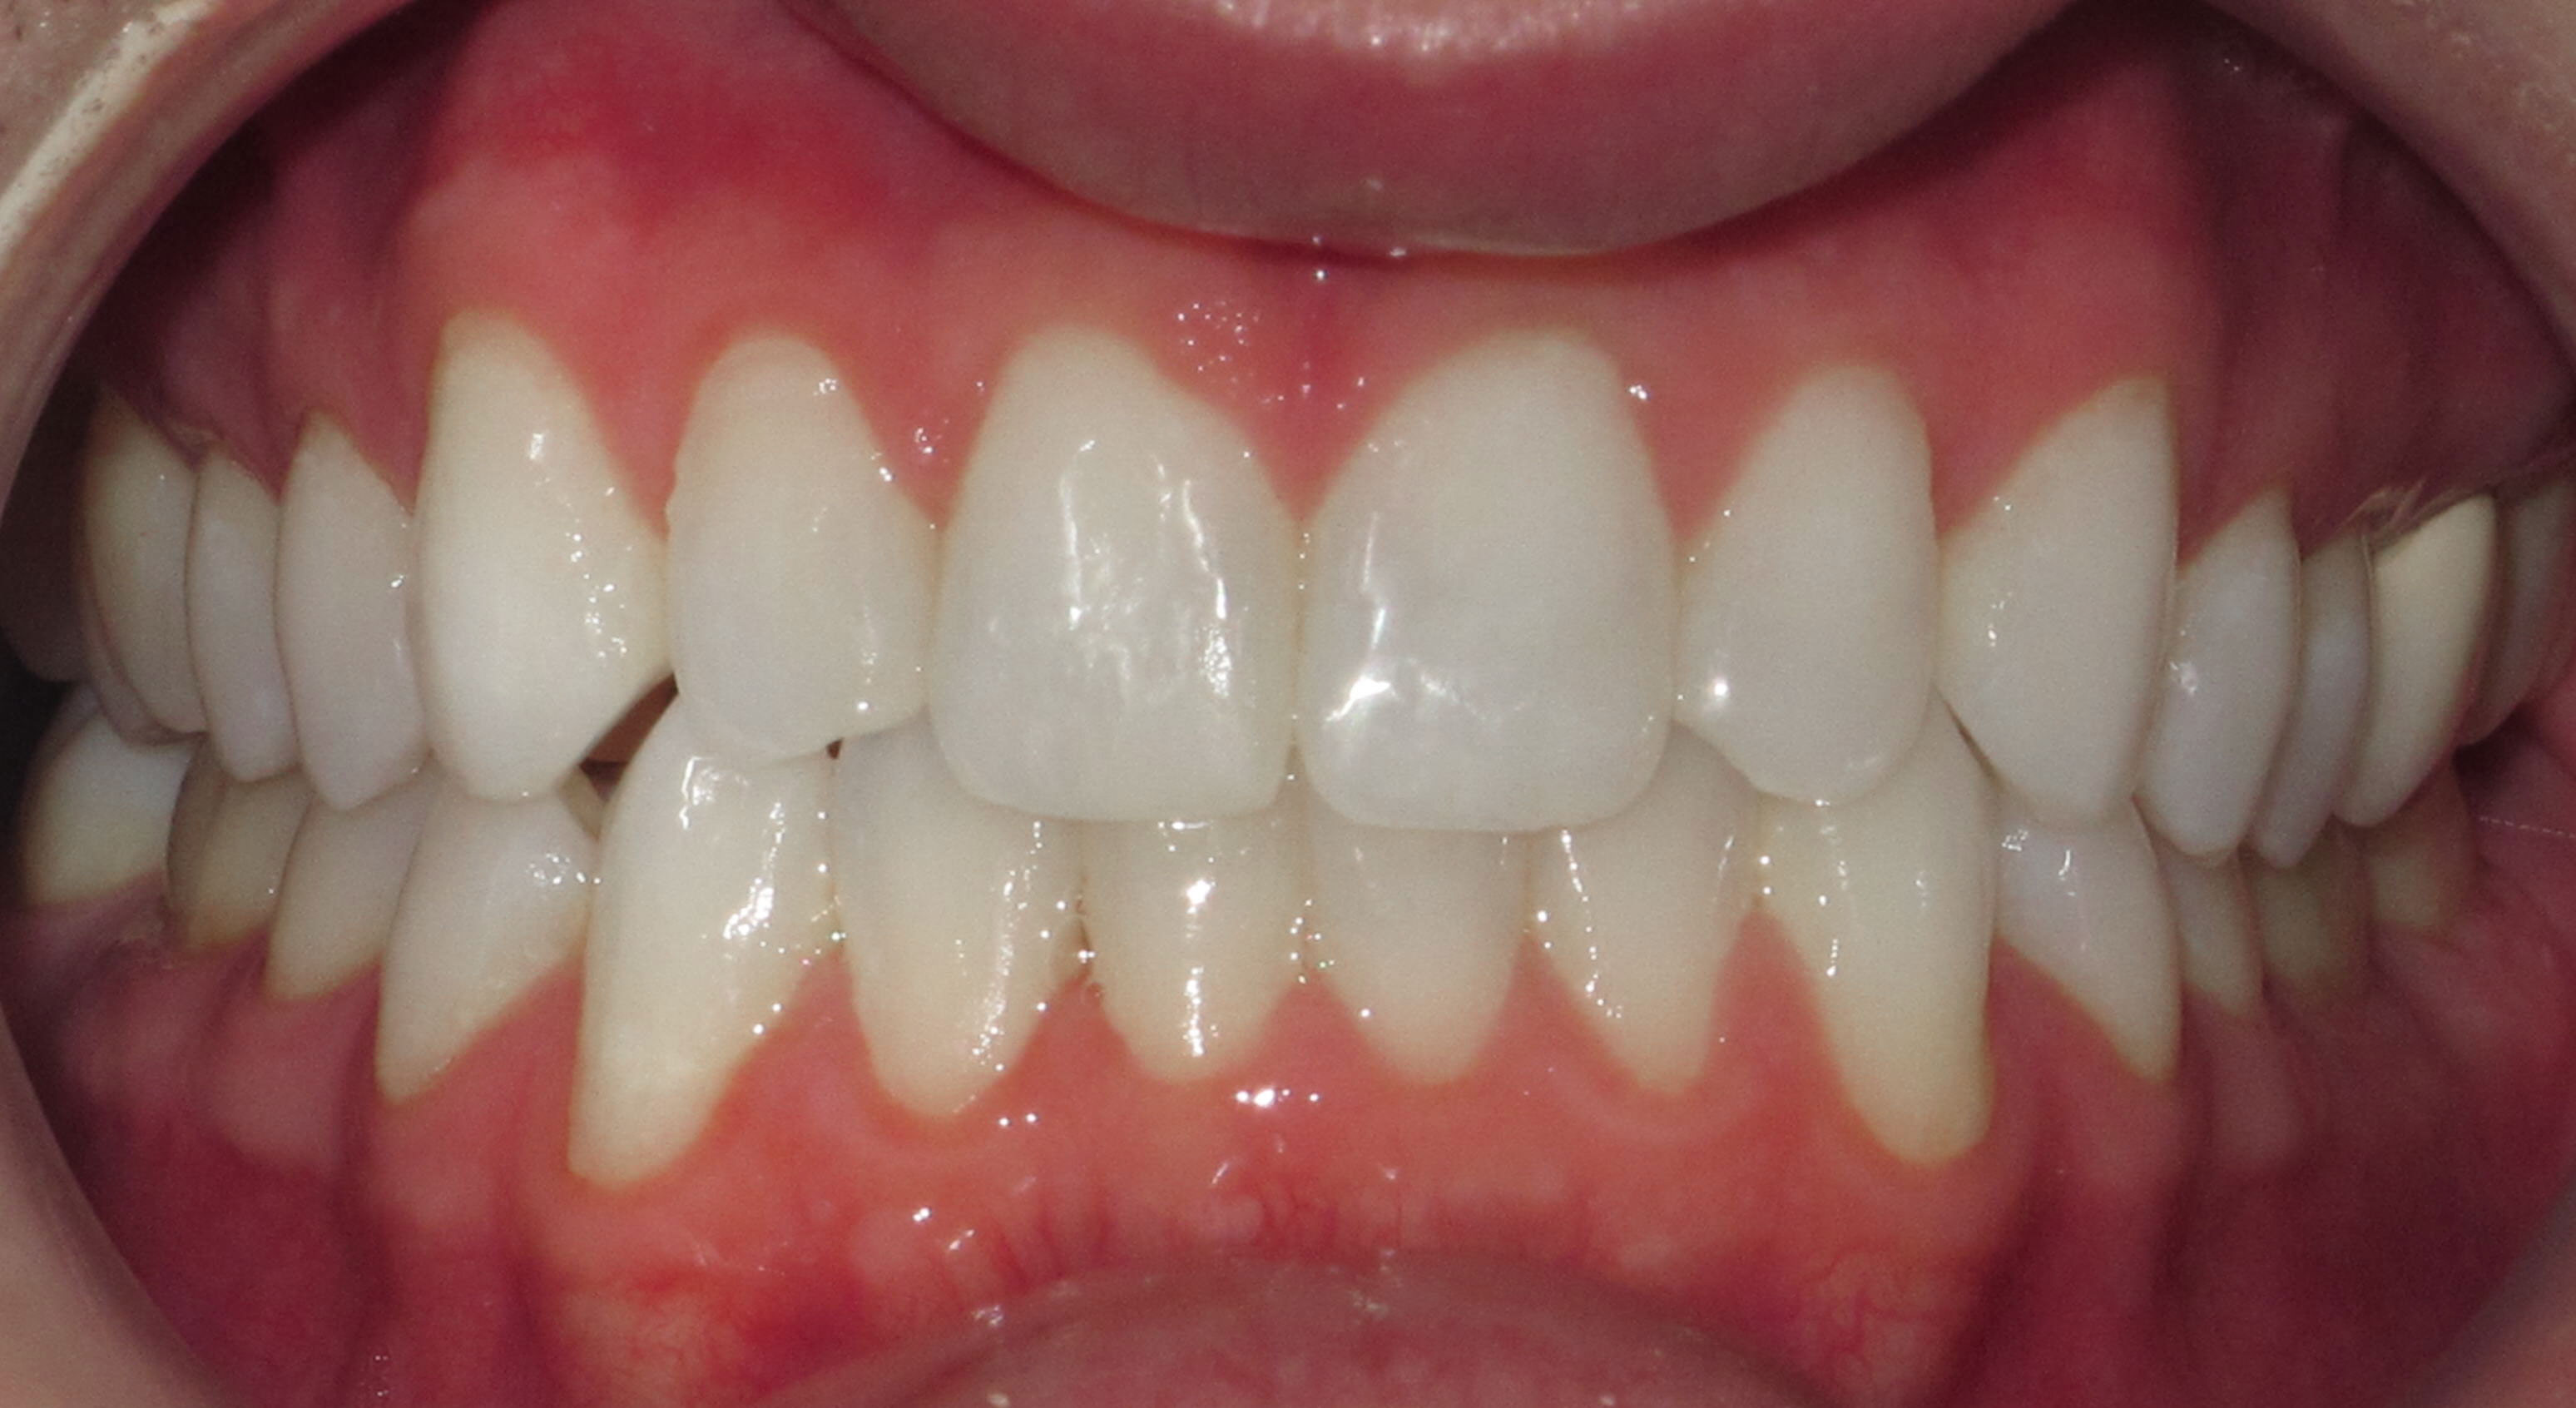 IMPROVING AESTHIC ALIGNMENT WITH LINGUAL BRACES - BEFORE